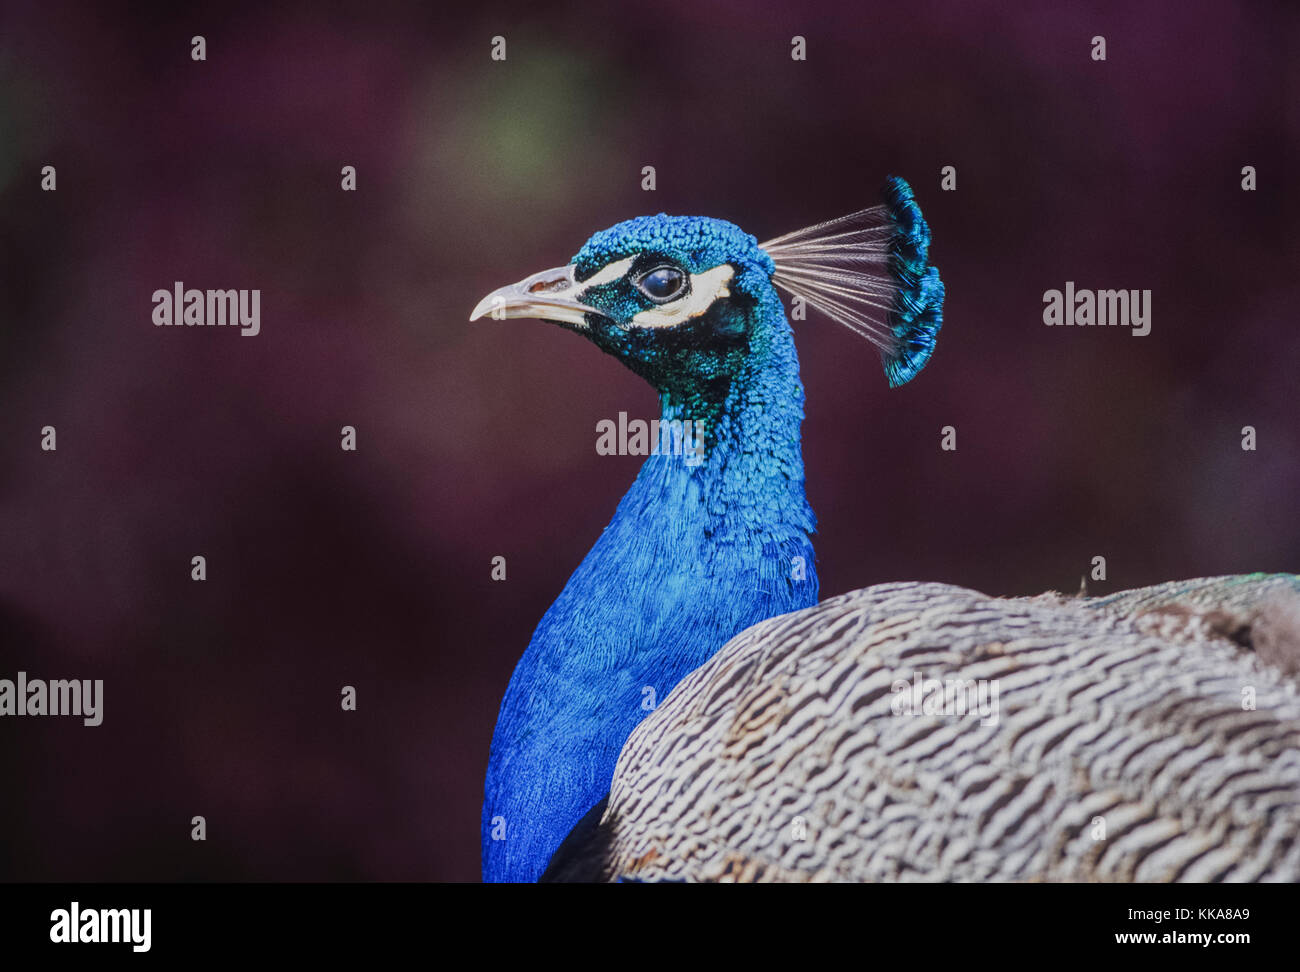 male Indian Peacock or Peafowl, (Pavo cristatus), Keoladeo Ghana National Park, Bharatpur, Rajasthan, India Stock Photo